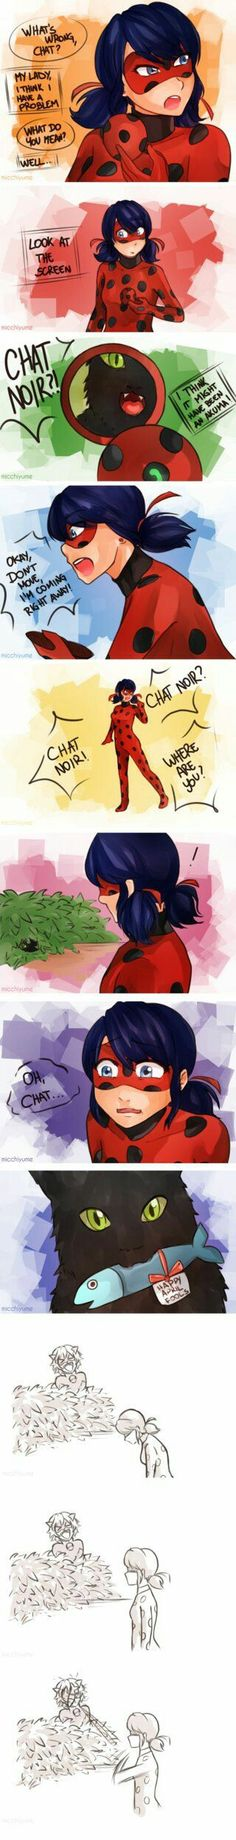 April Fools! (Miraculous Ladybug, Chat Noir, comic)